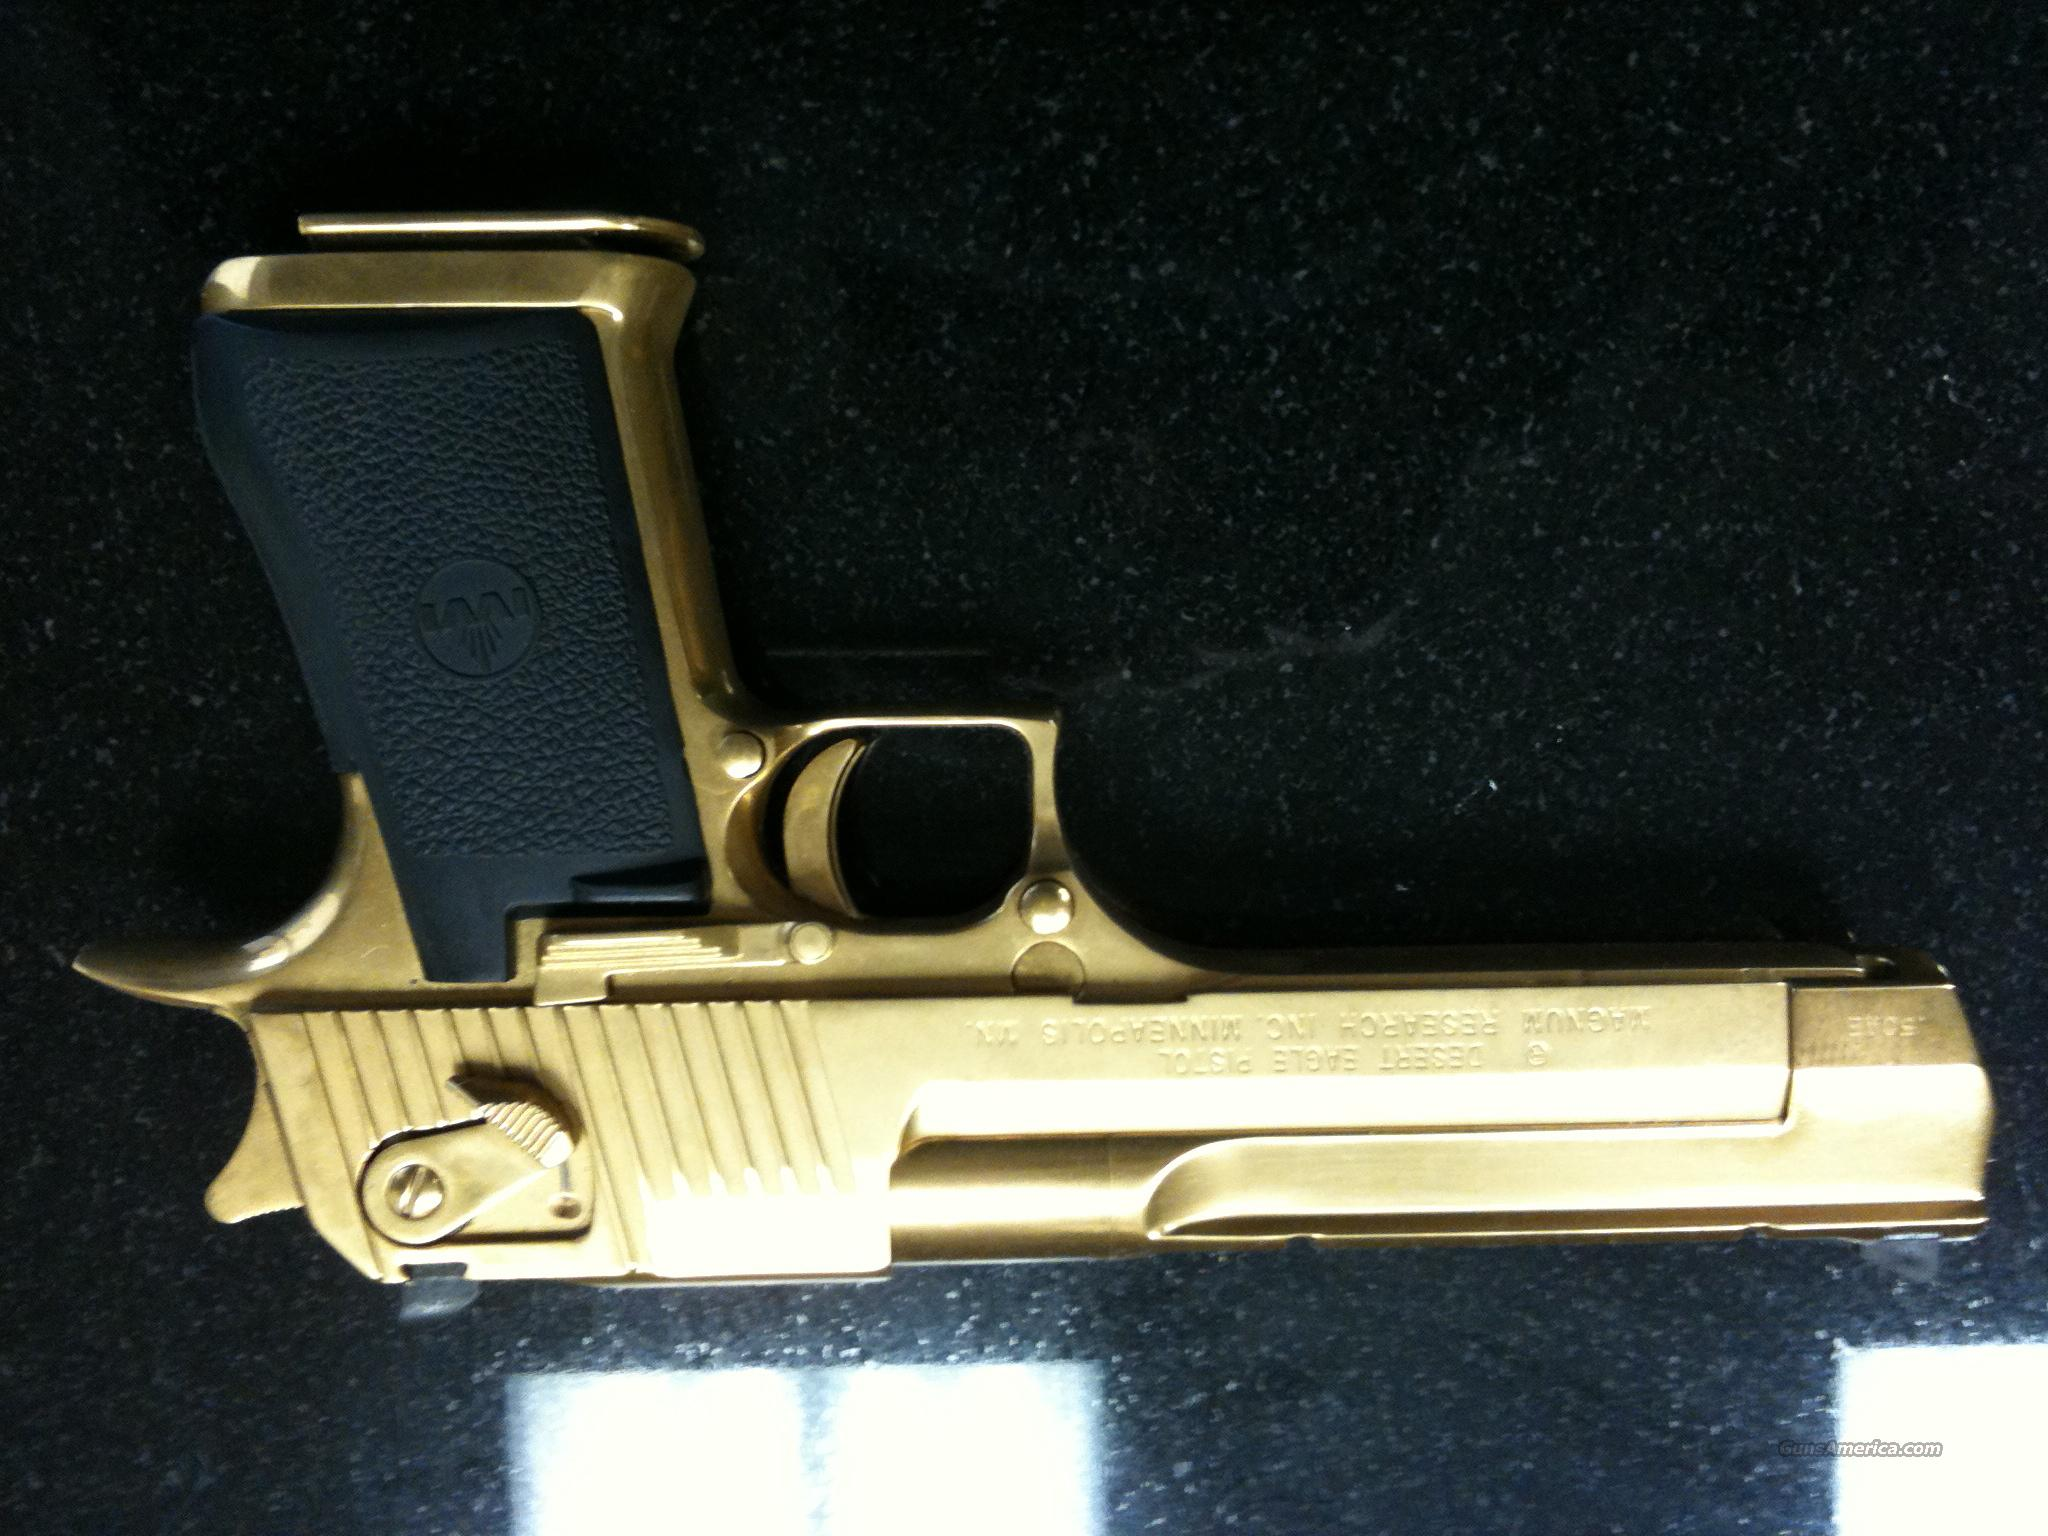 .50 Caliber Gold Plated Desert Eagle  Guns > Pistols > Desert Eagle/IMI Pistols > Desert Eagle